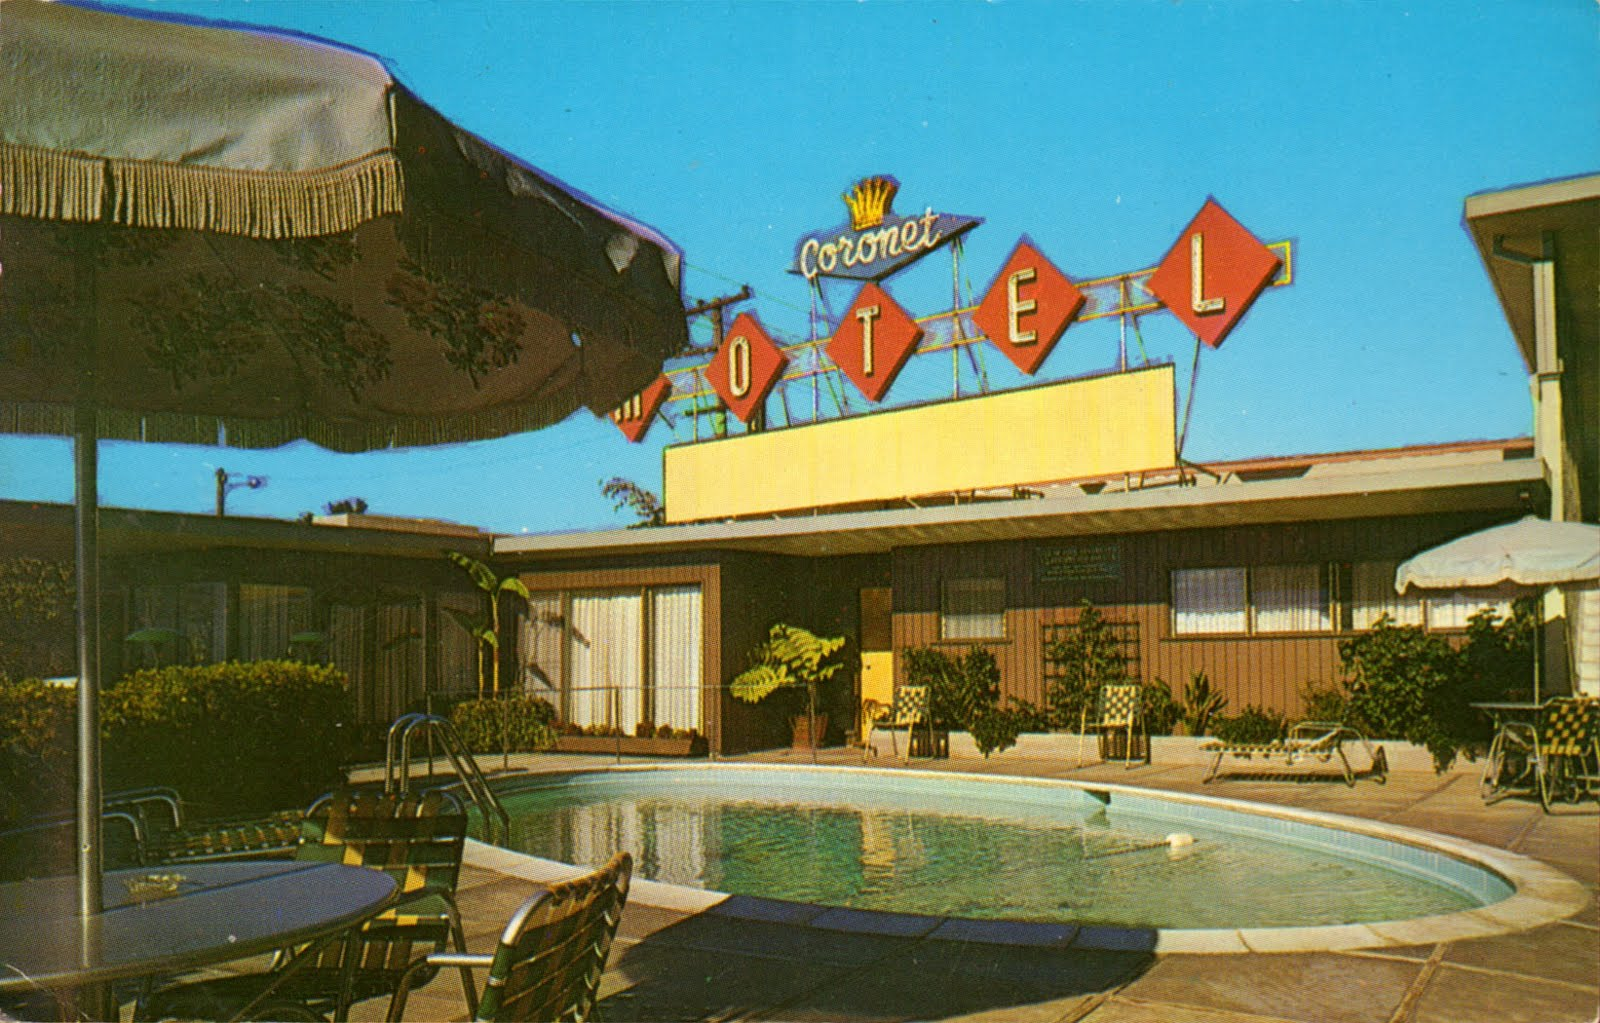 A Day With The Mistress Borghese The No Tell Motel A